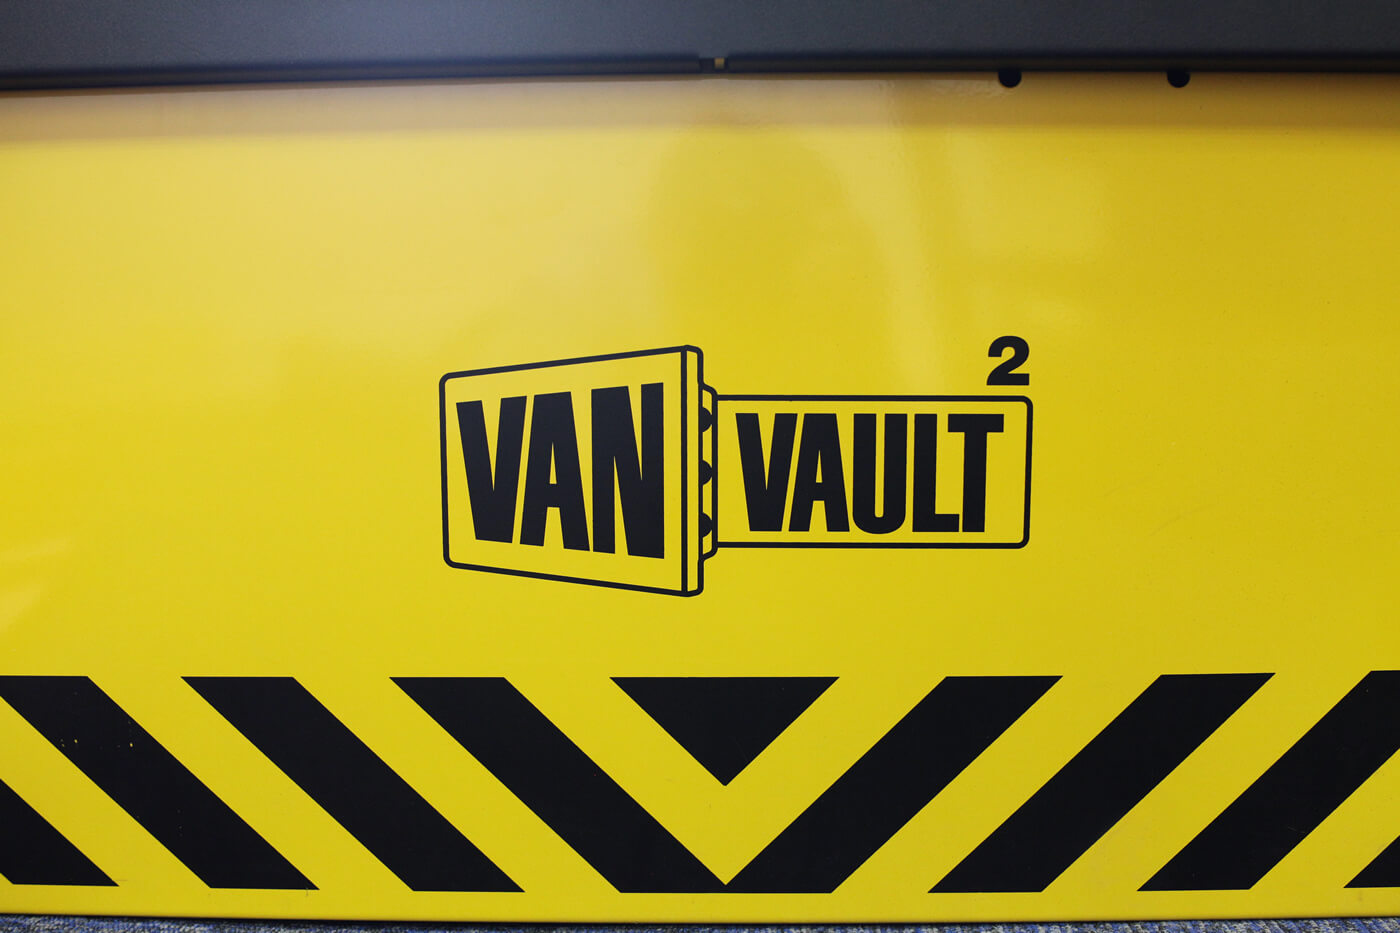 Birchwood Van Vault